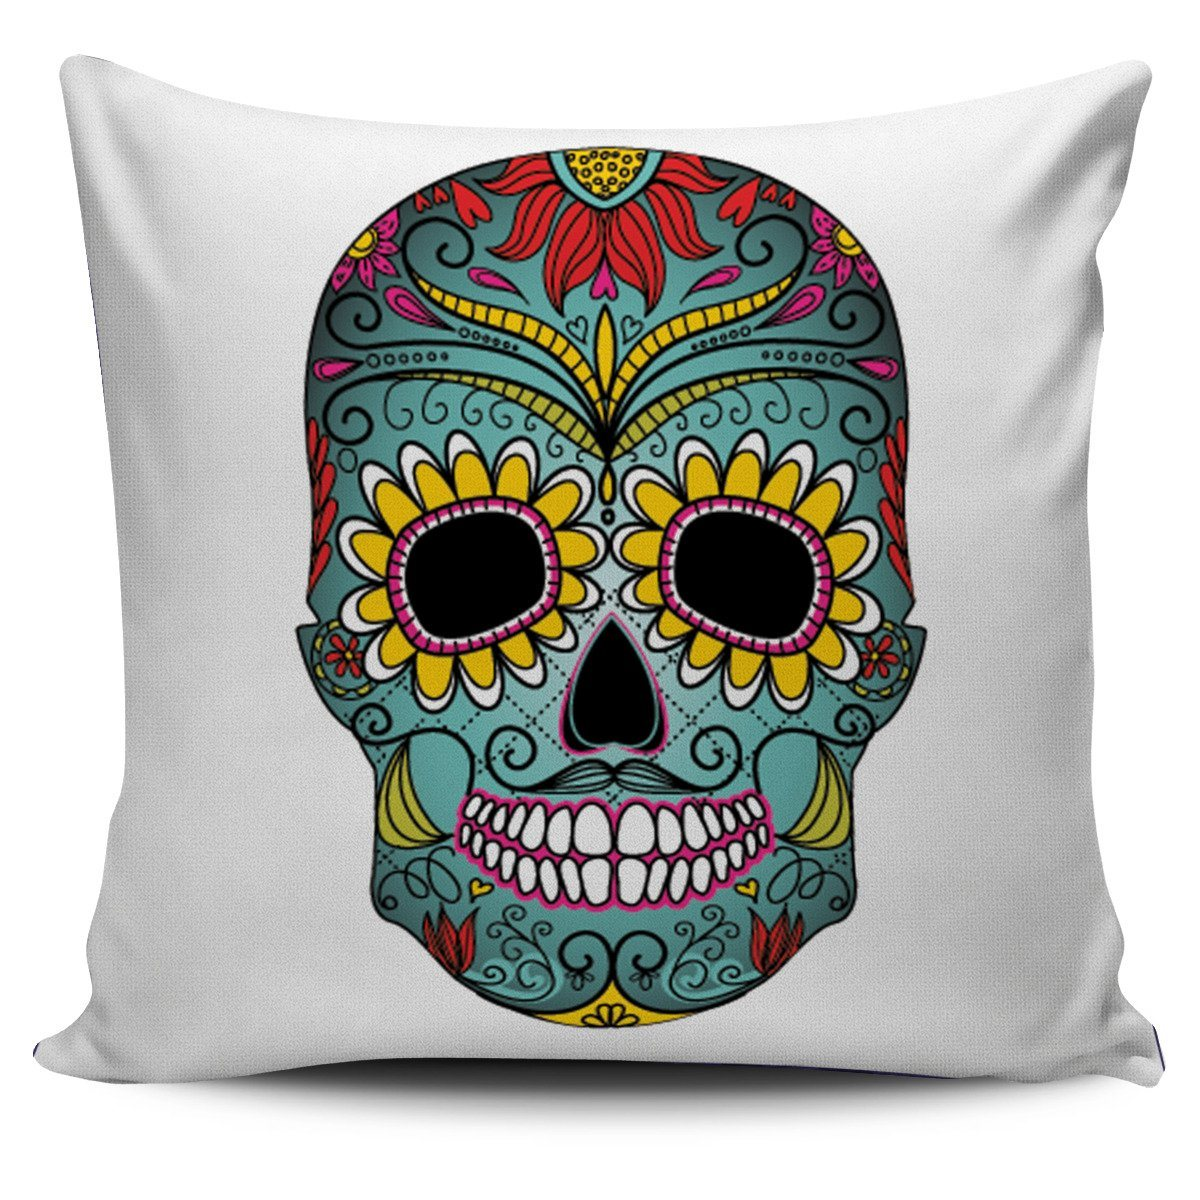 Green Sugar Skull Pillow Cover